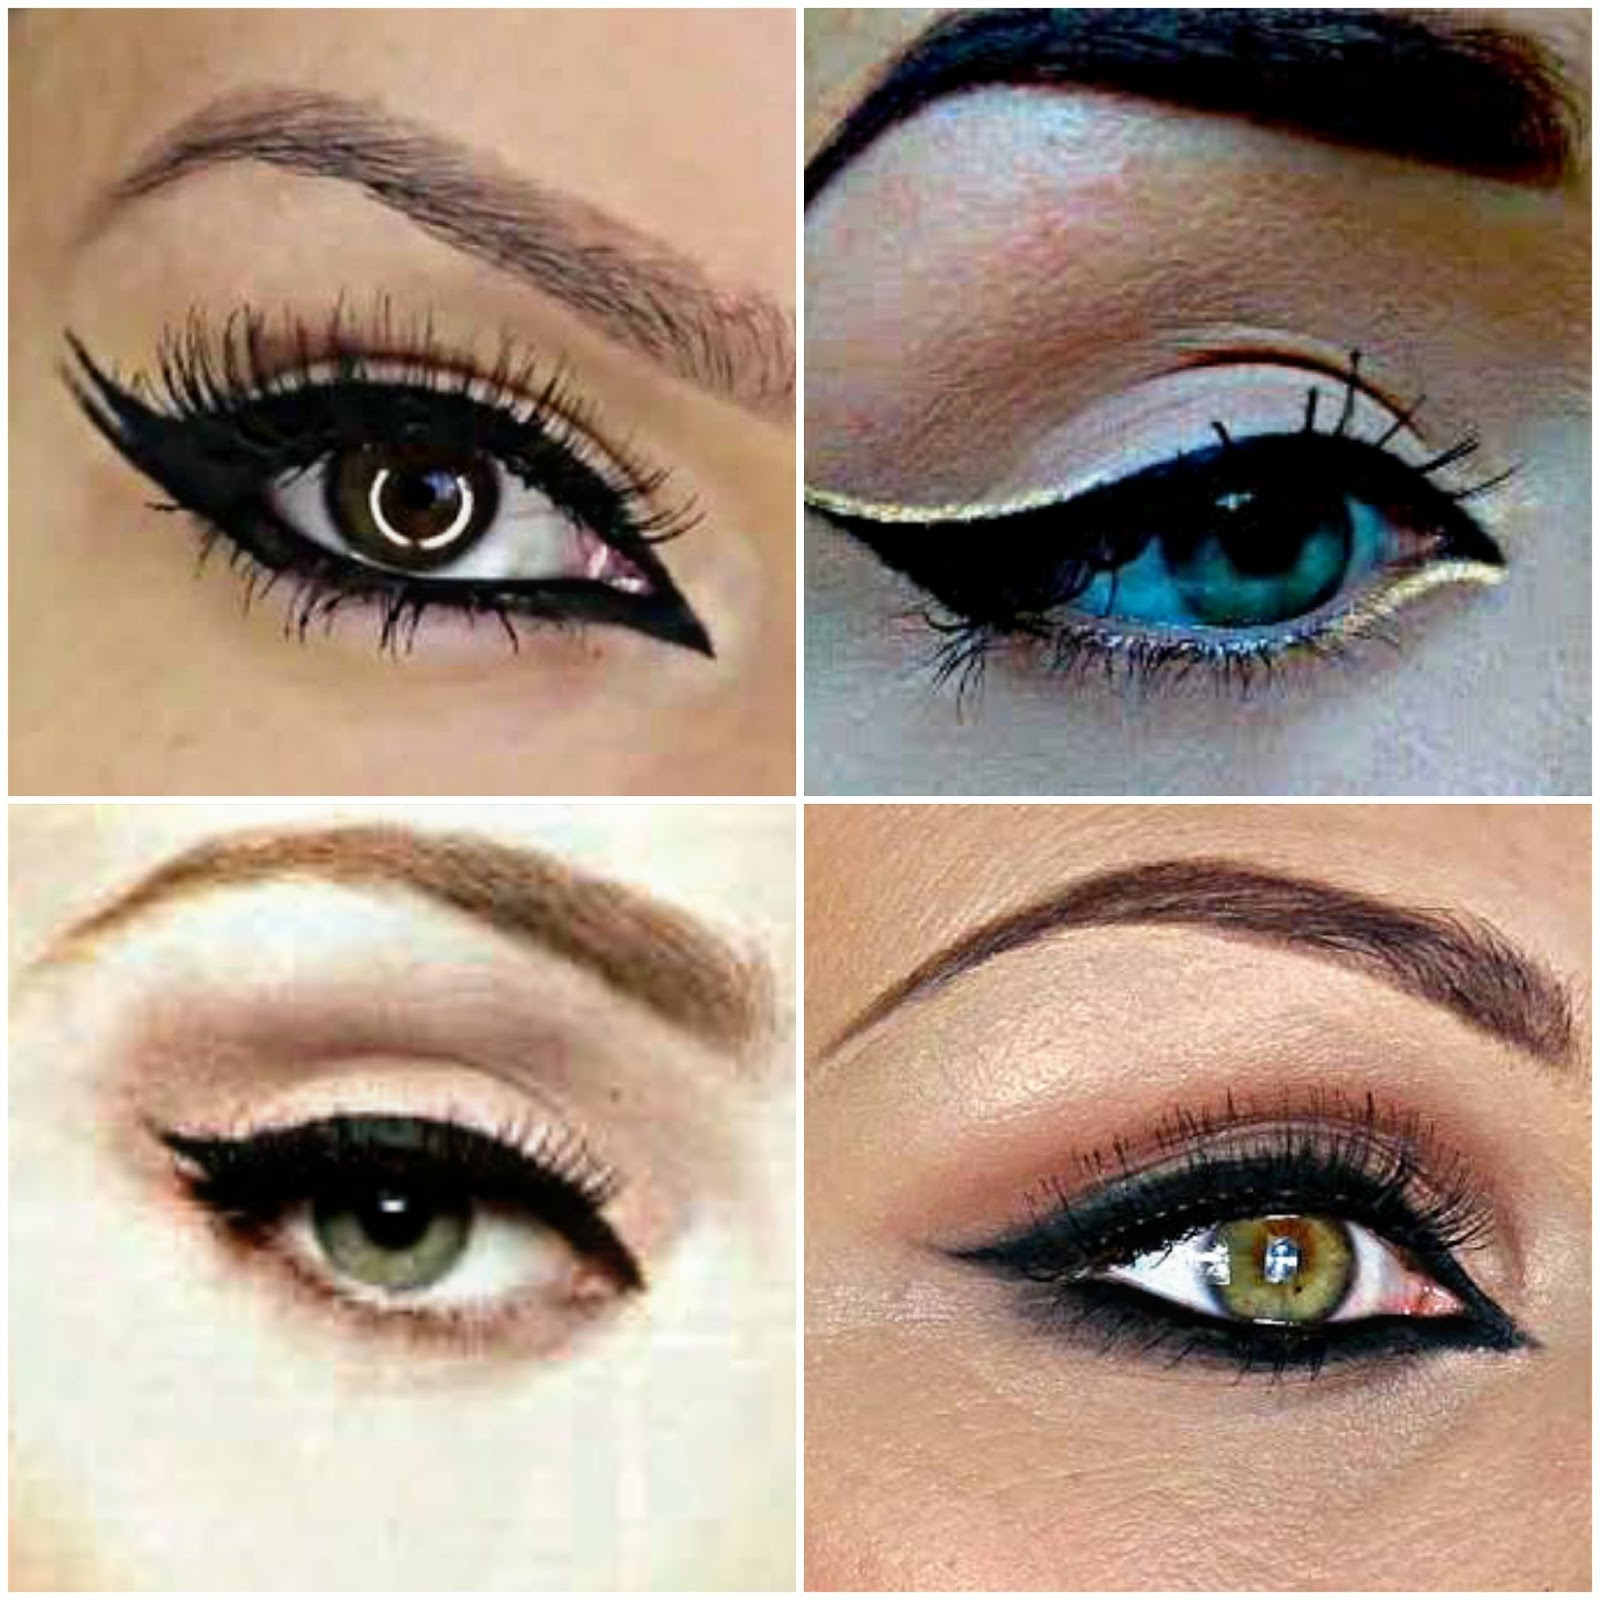 Almond Eyes Are Amazing To Try Arabic Eyeliner On! As Your Eyes Are Round  And Have Width At The Same Time, And Also The Lid Is Pretty Prominent;